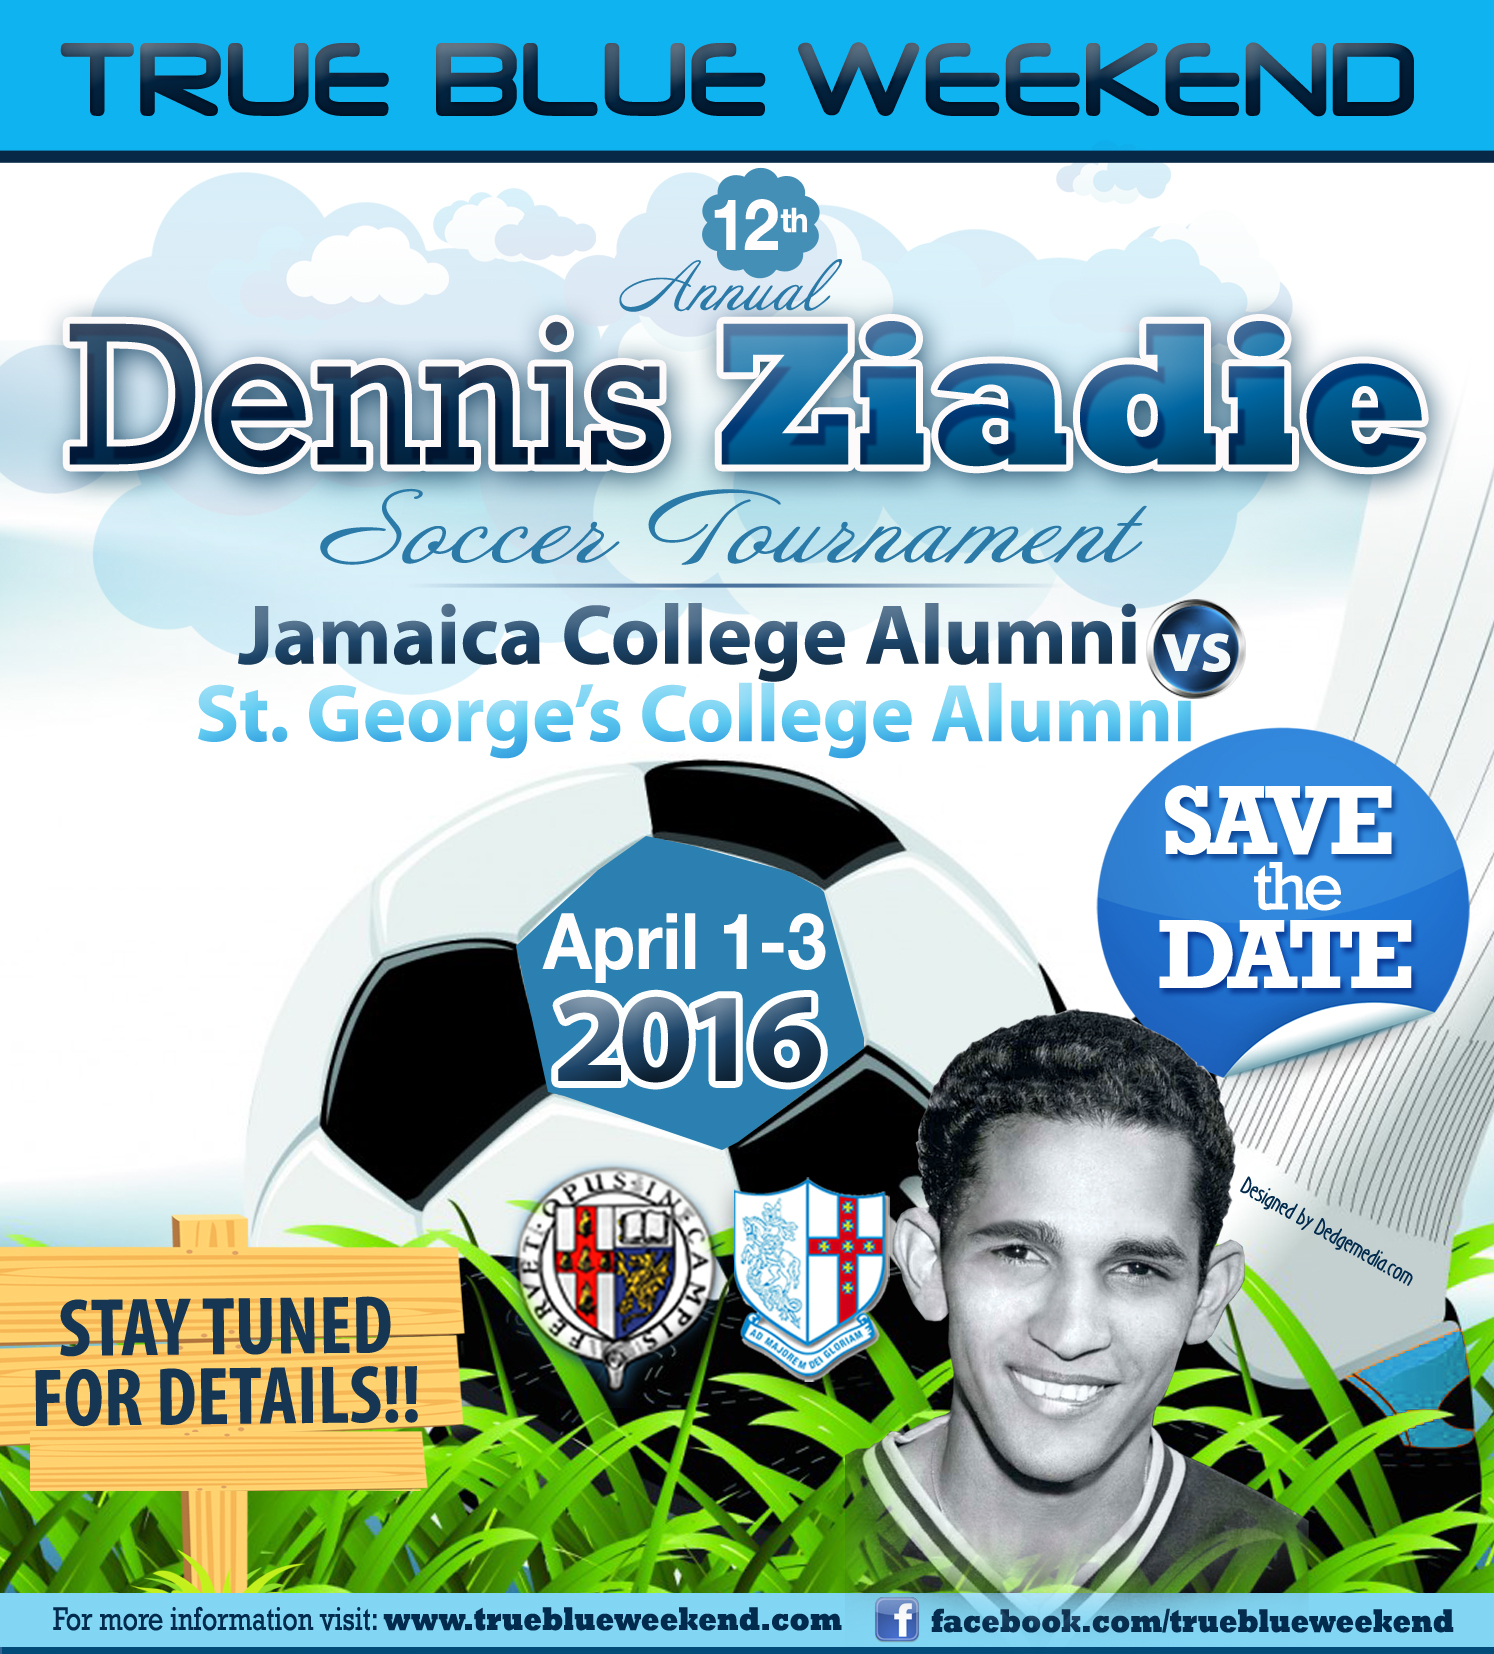 12th Annual True Blue Weekend 2016